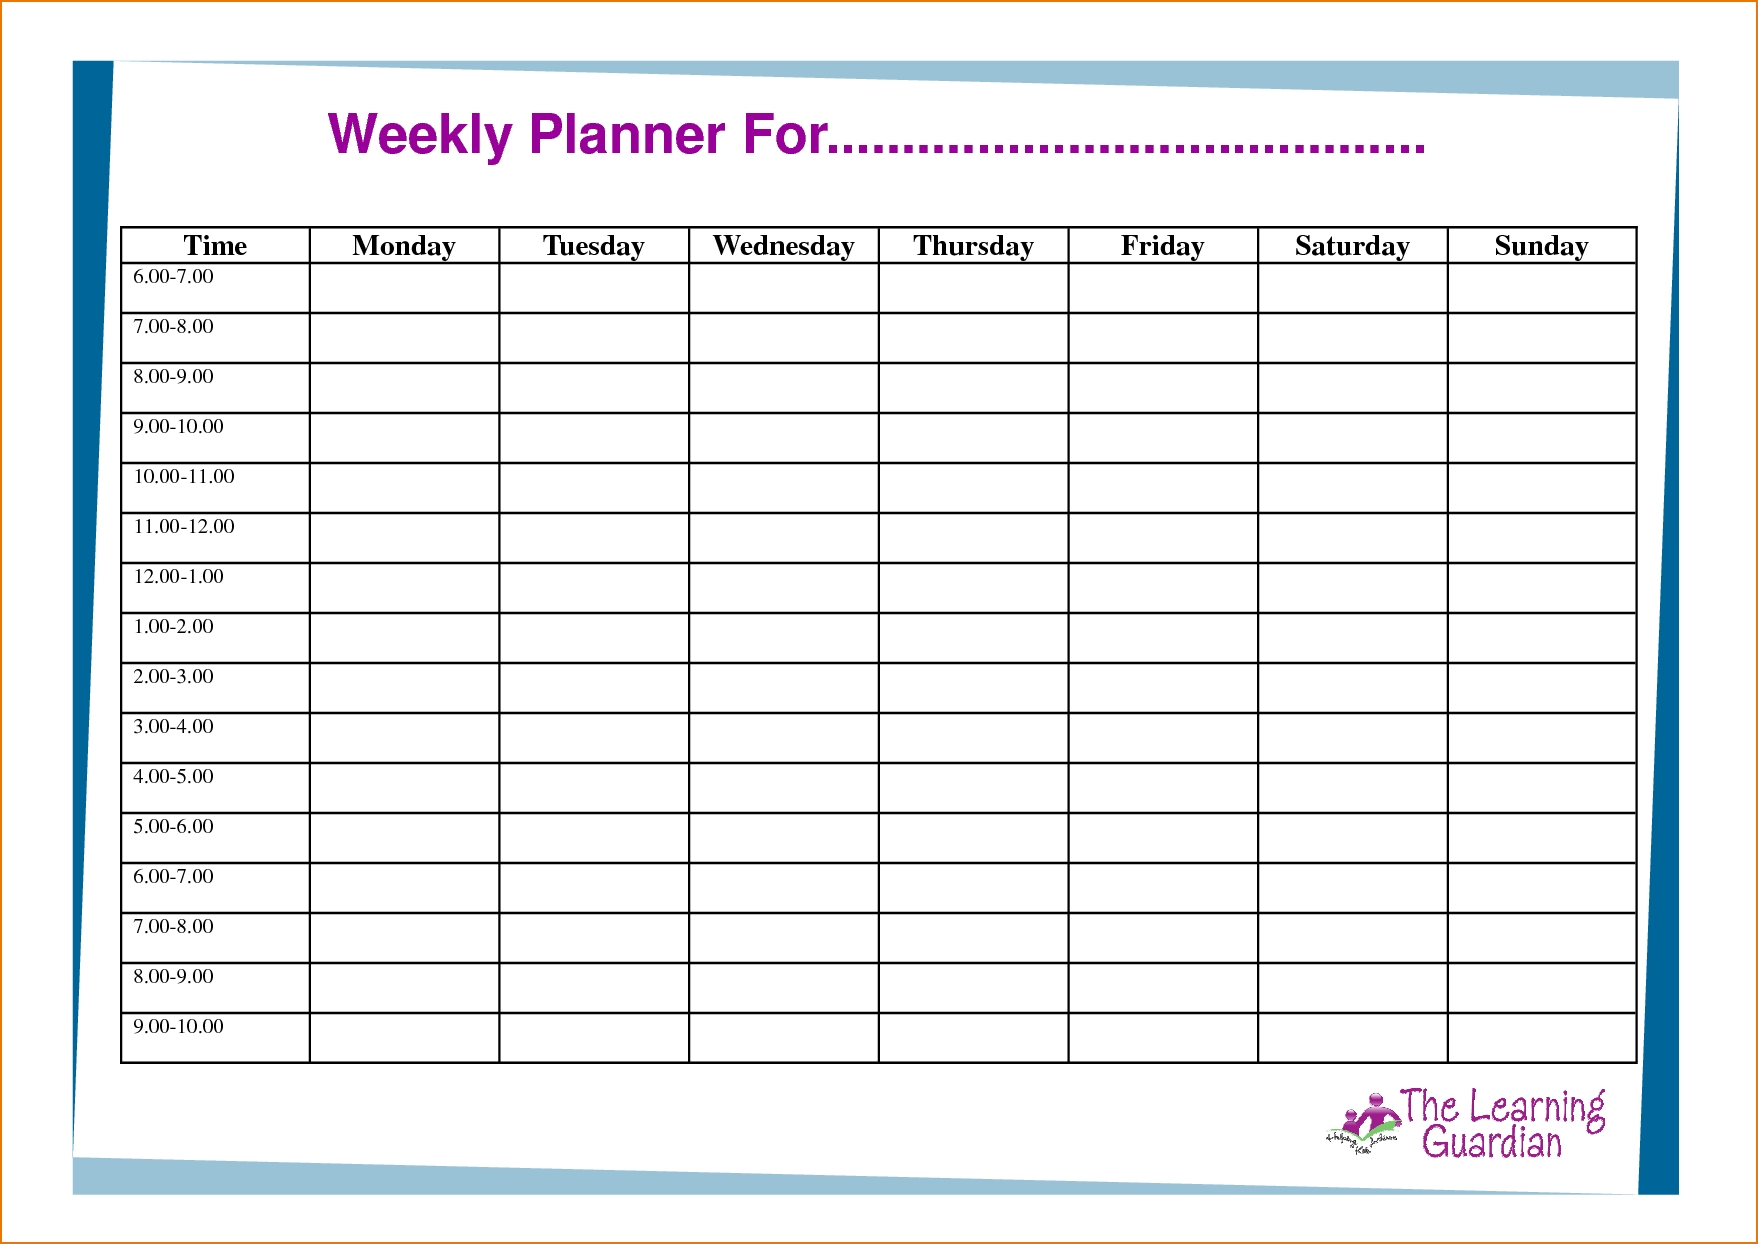 Schedule Template Daily Task Exceptional Week Planner Sample For with regard to 3 Week Task Planner Whiteboard